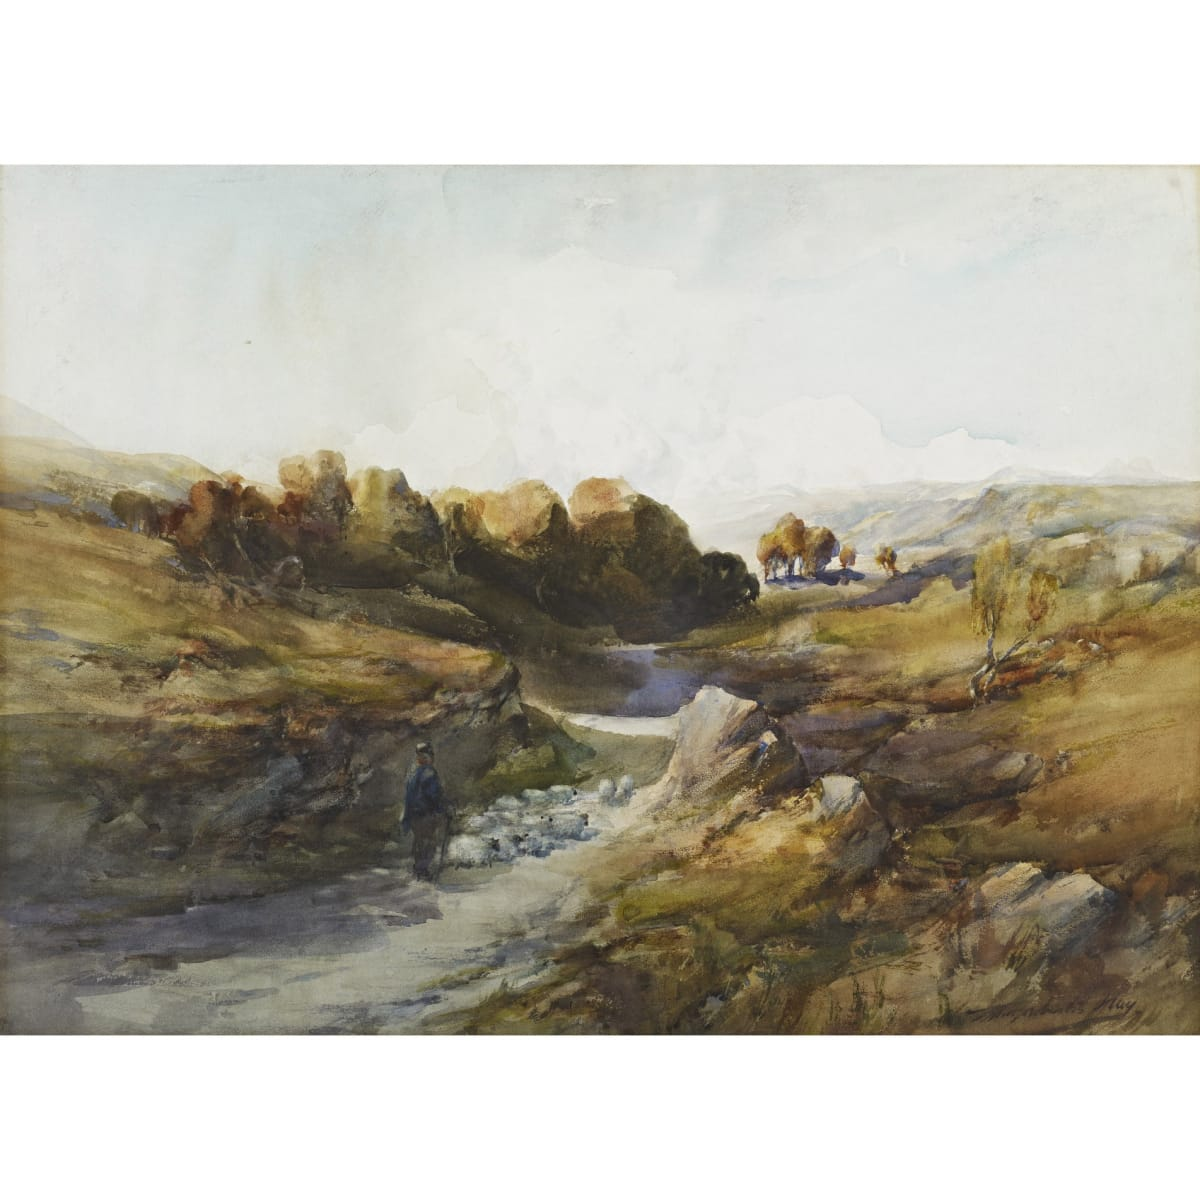 Thomas Marjoribanks Hay The old coach road, Oban signed and titled verso watercolour on paper laid on board 22 x 30 inches